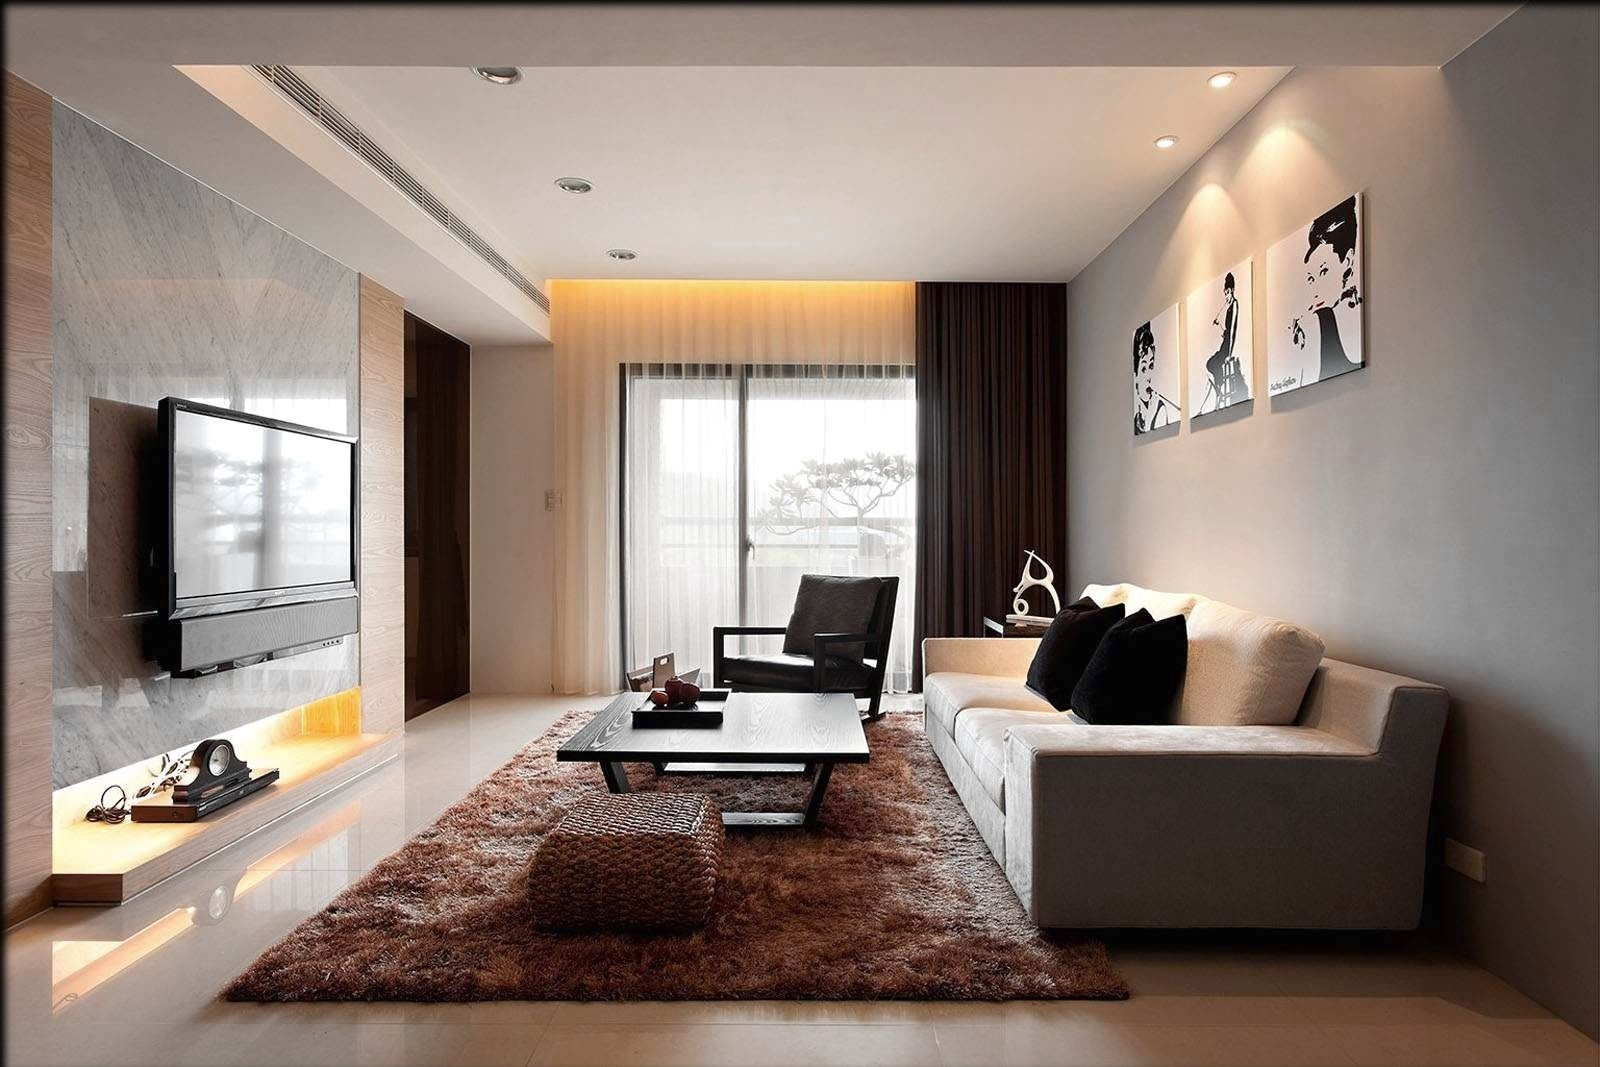 10 Unique Interior Design Living Room Ideas interior design ideas for small living room simple fresh home 1 2021